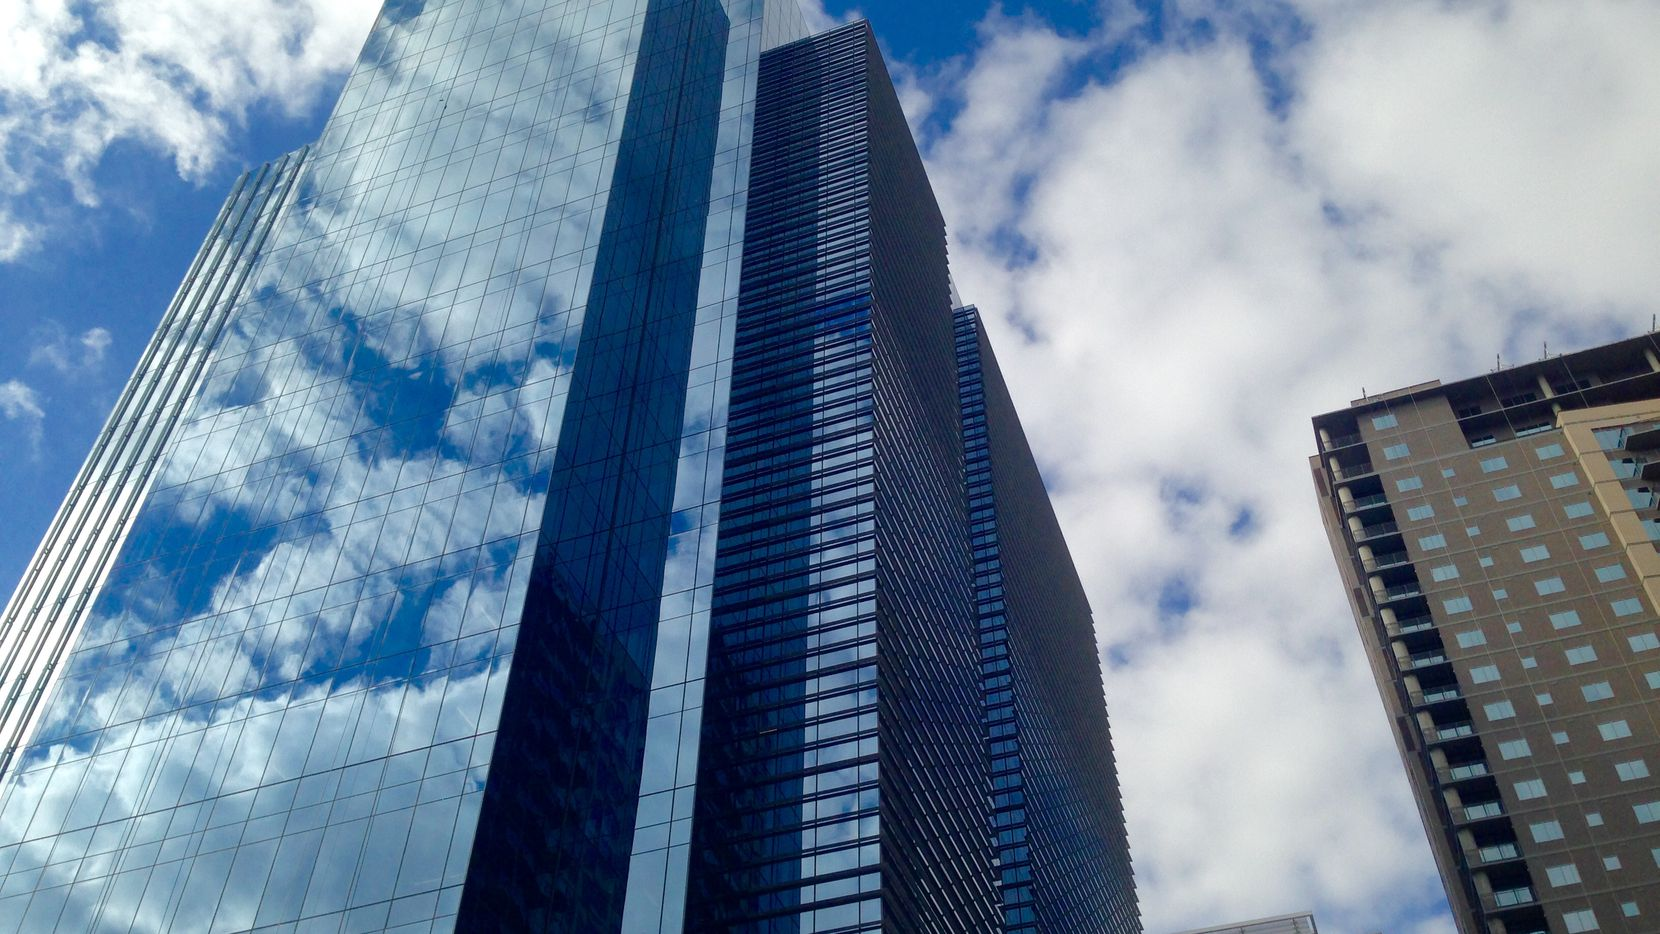 Nuveen Real Estate's new Dallas regional office is in the Union office tower at Cedar Springs Road and Field Street.